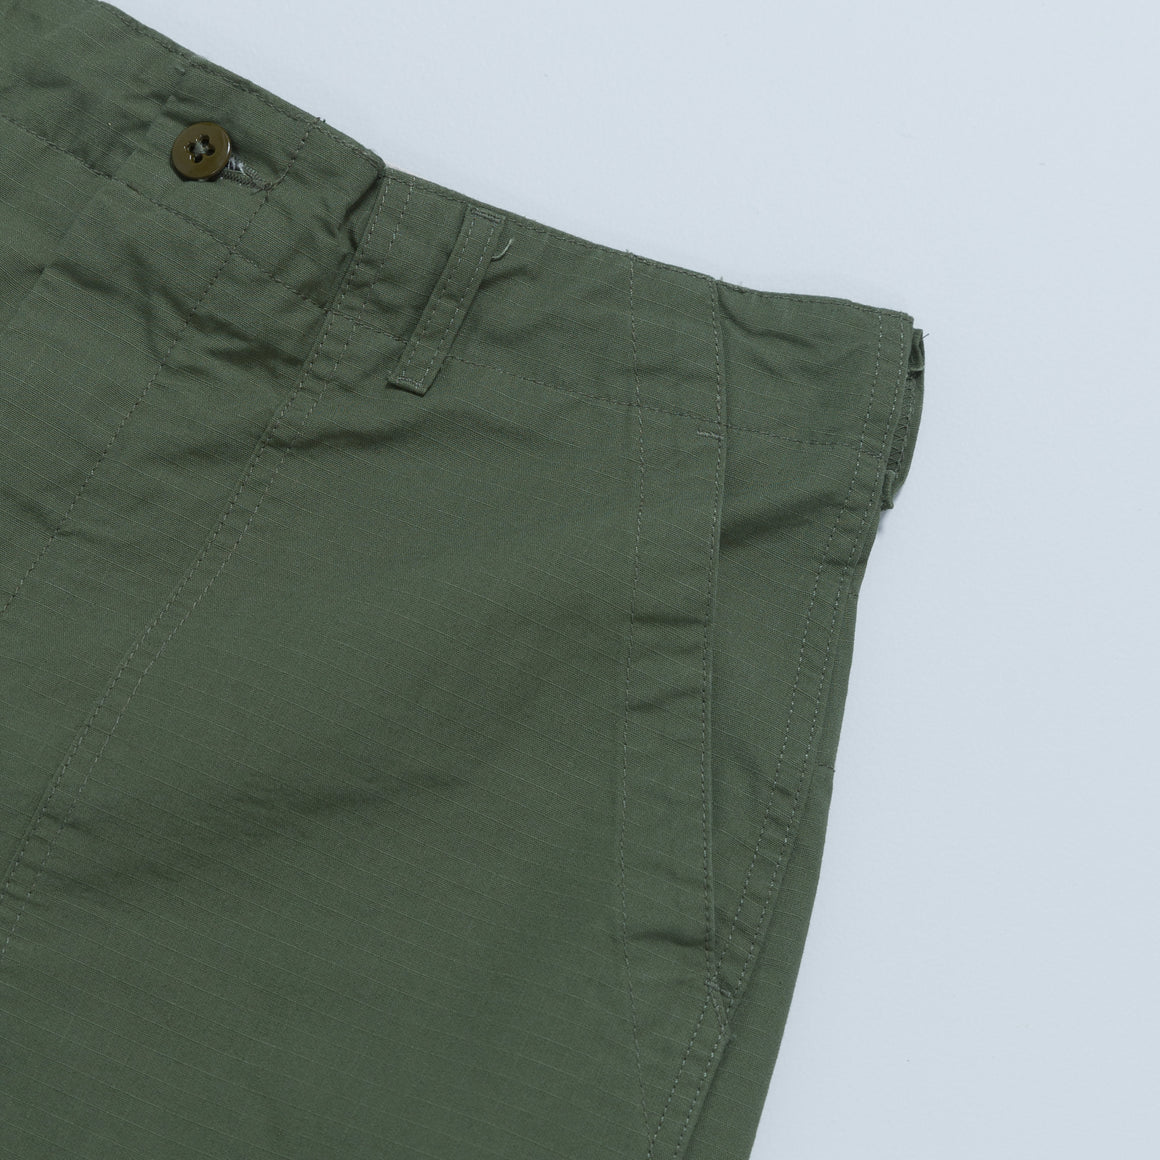 Fatigue Short - Olive Cotton Ripstop - Up There